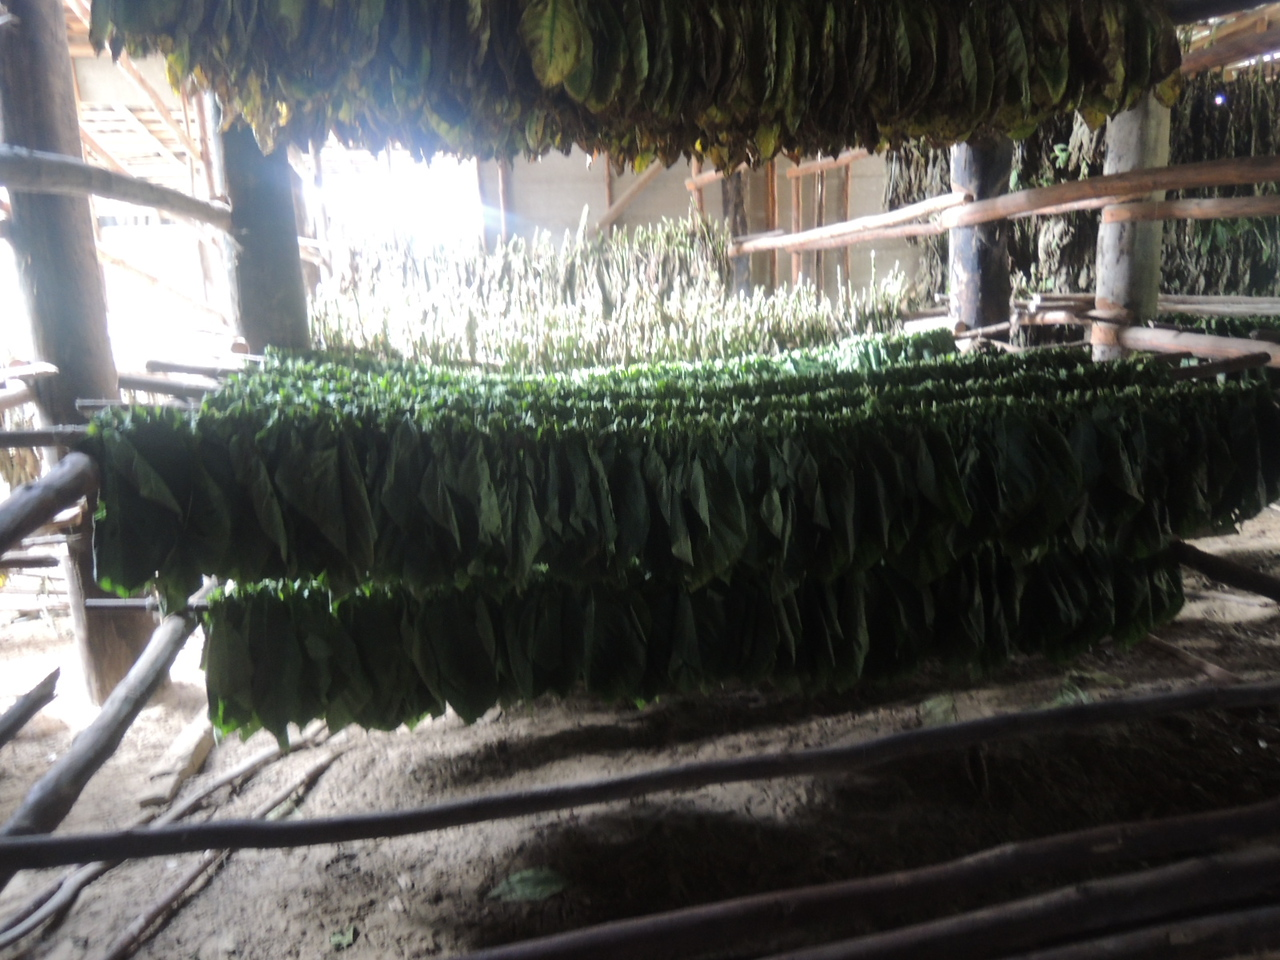 Tobacco being dried in the barn.